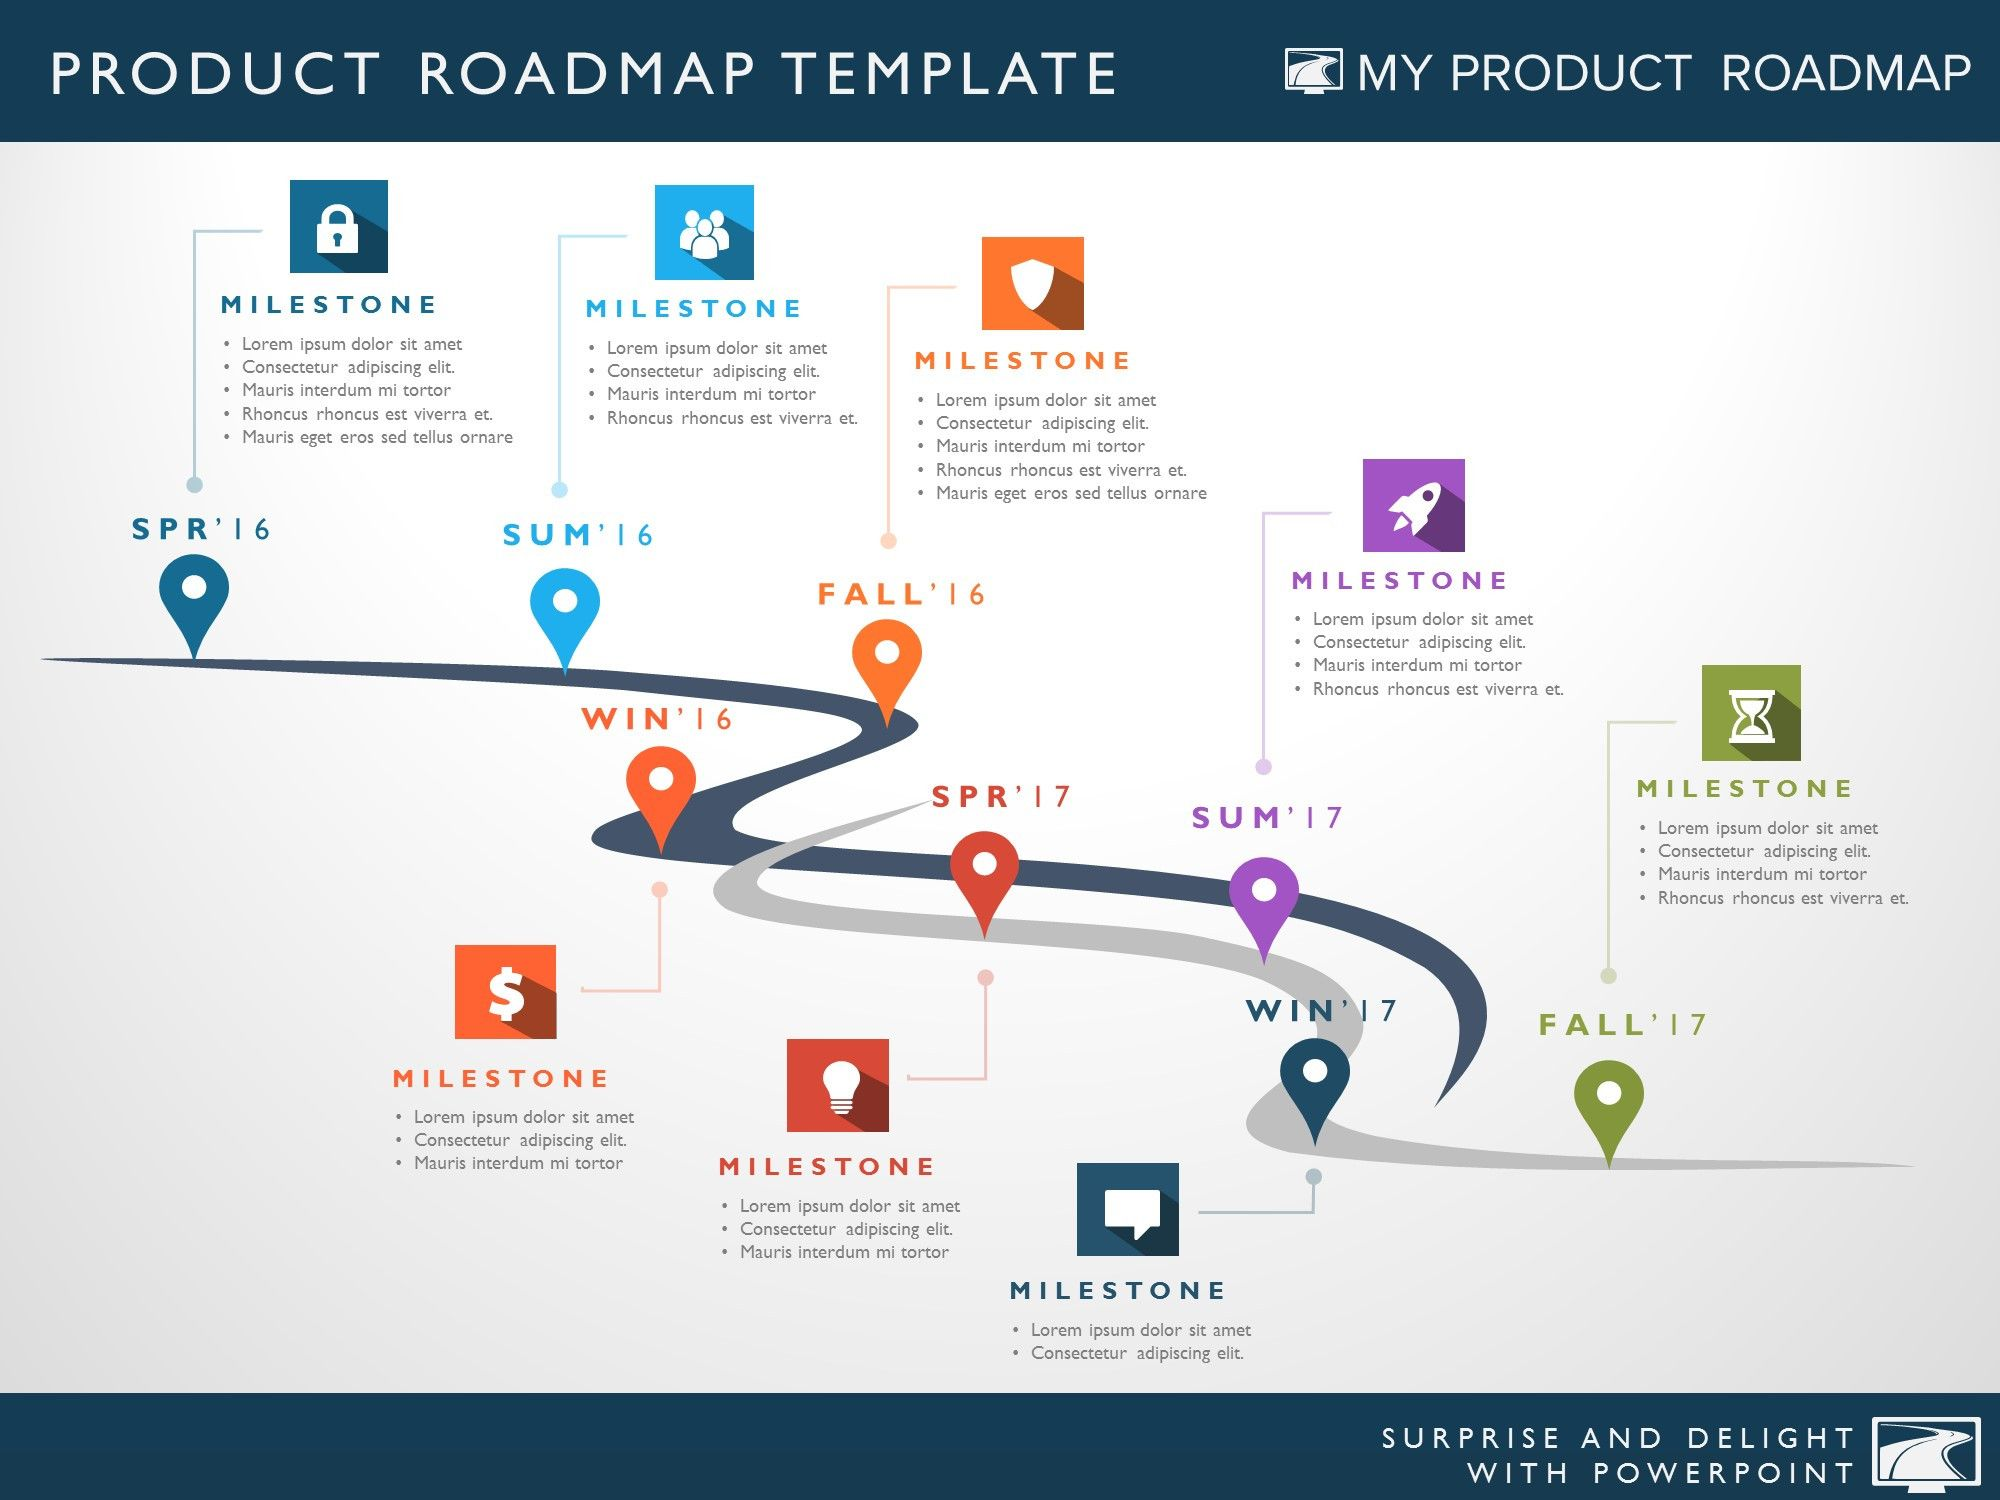 microsoft office portfolio template - eight phase software planning timeline roadmap powerpoint